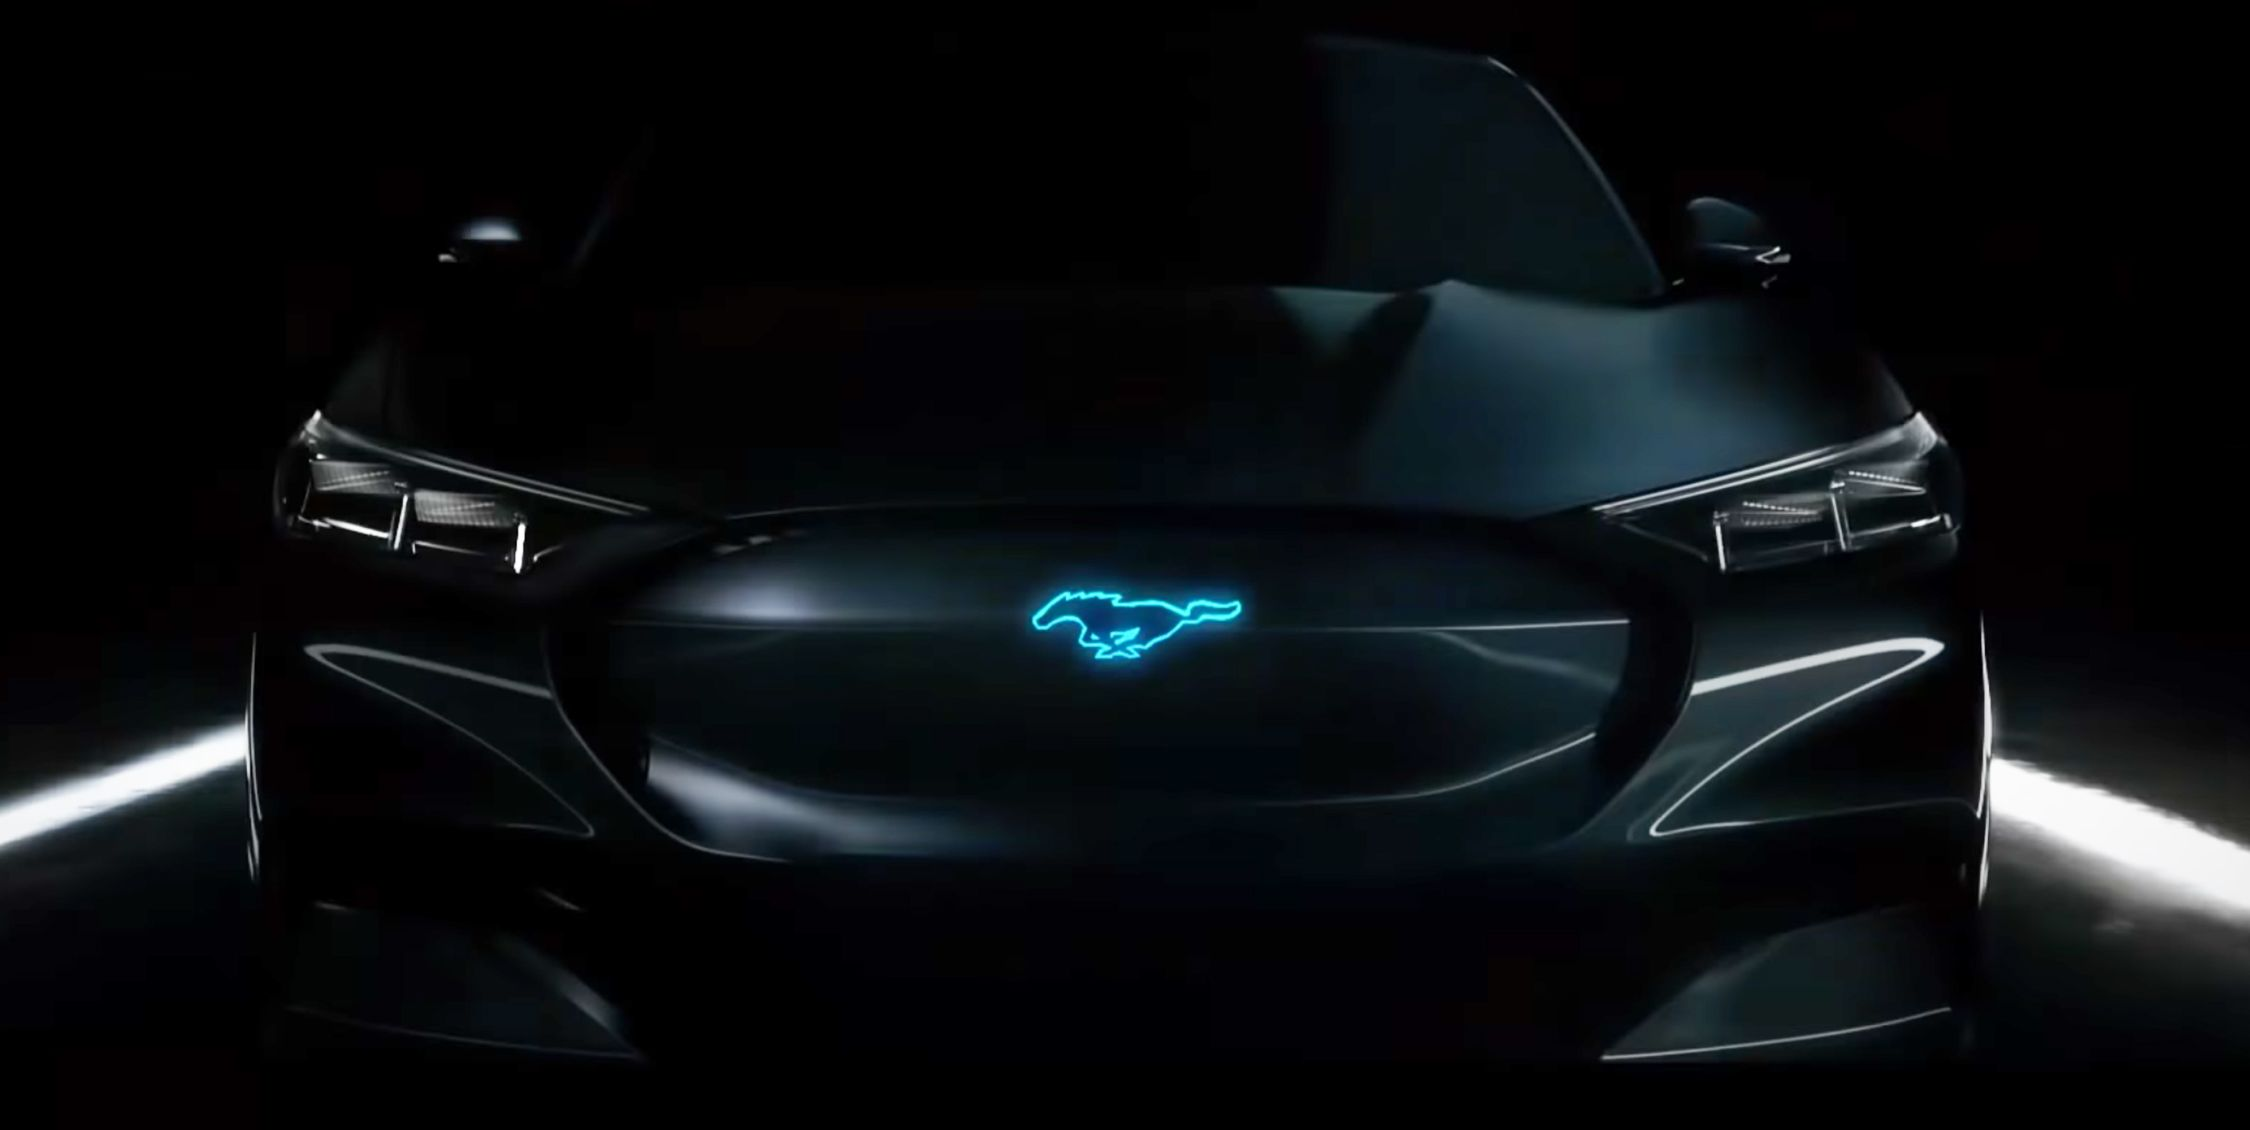 Ford Will Build the Mustang Hybrid in Michigan and the Mustang-Inspired Electric Crossover in Mexico